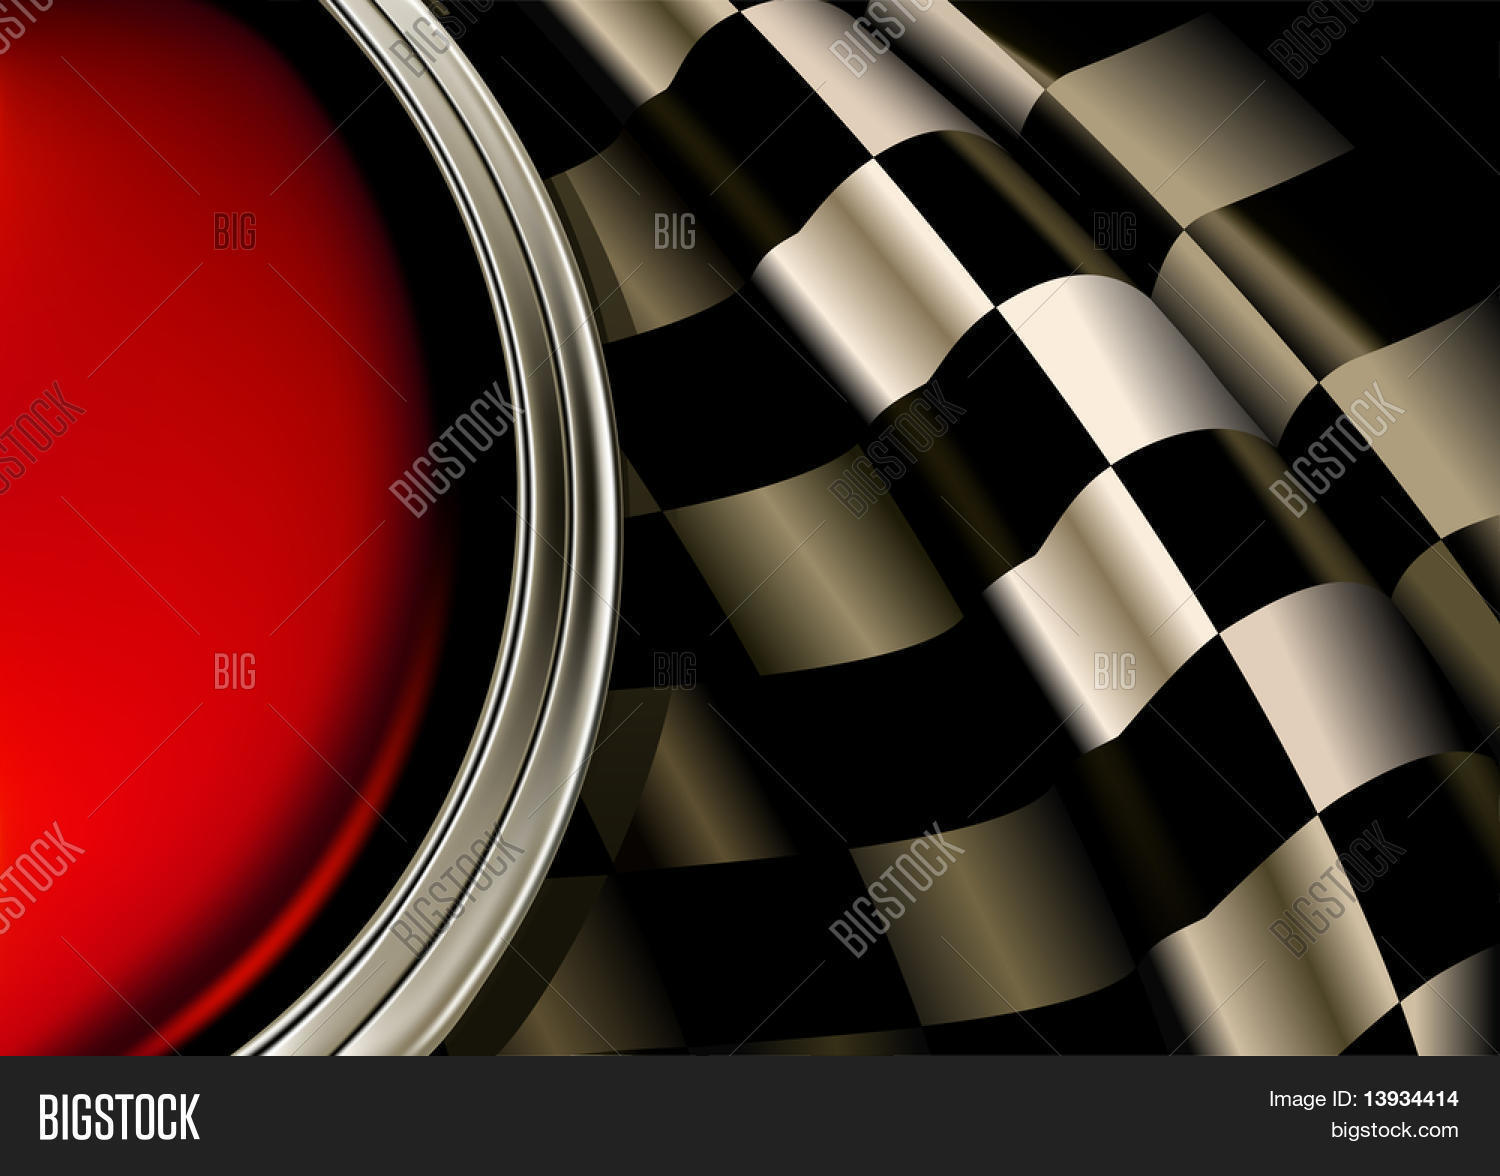 checkered wallpaper hd